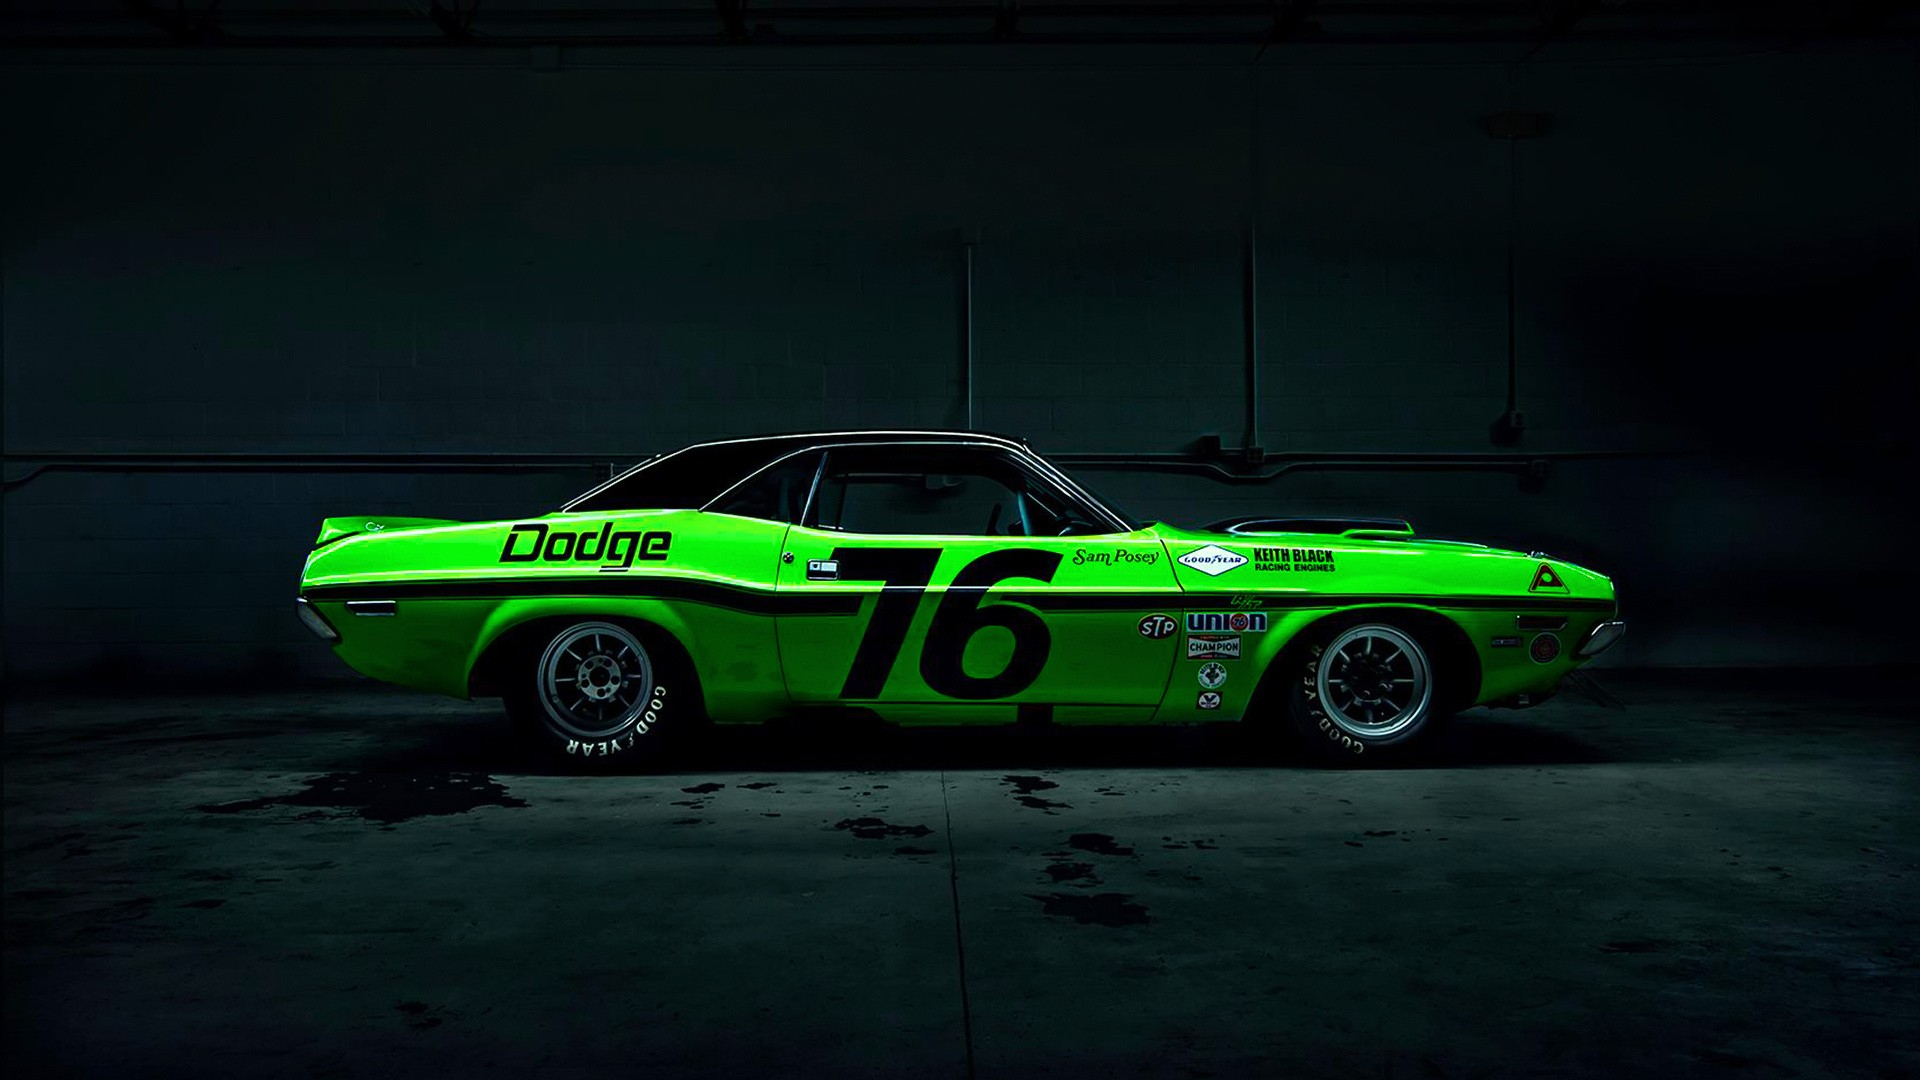 Ultra Hd Wallpapers 8k Cars Pack Dodge Challenger Drag Racing Wallpaper Hd Car Wallpapers